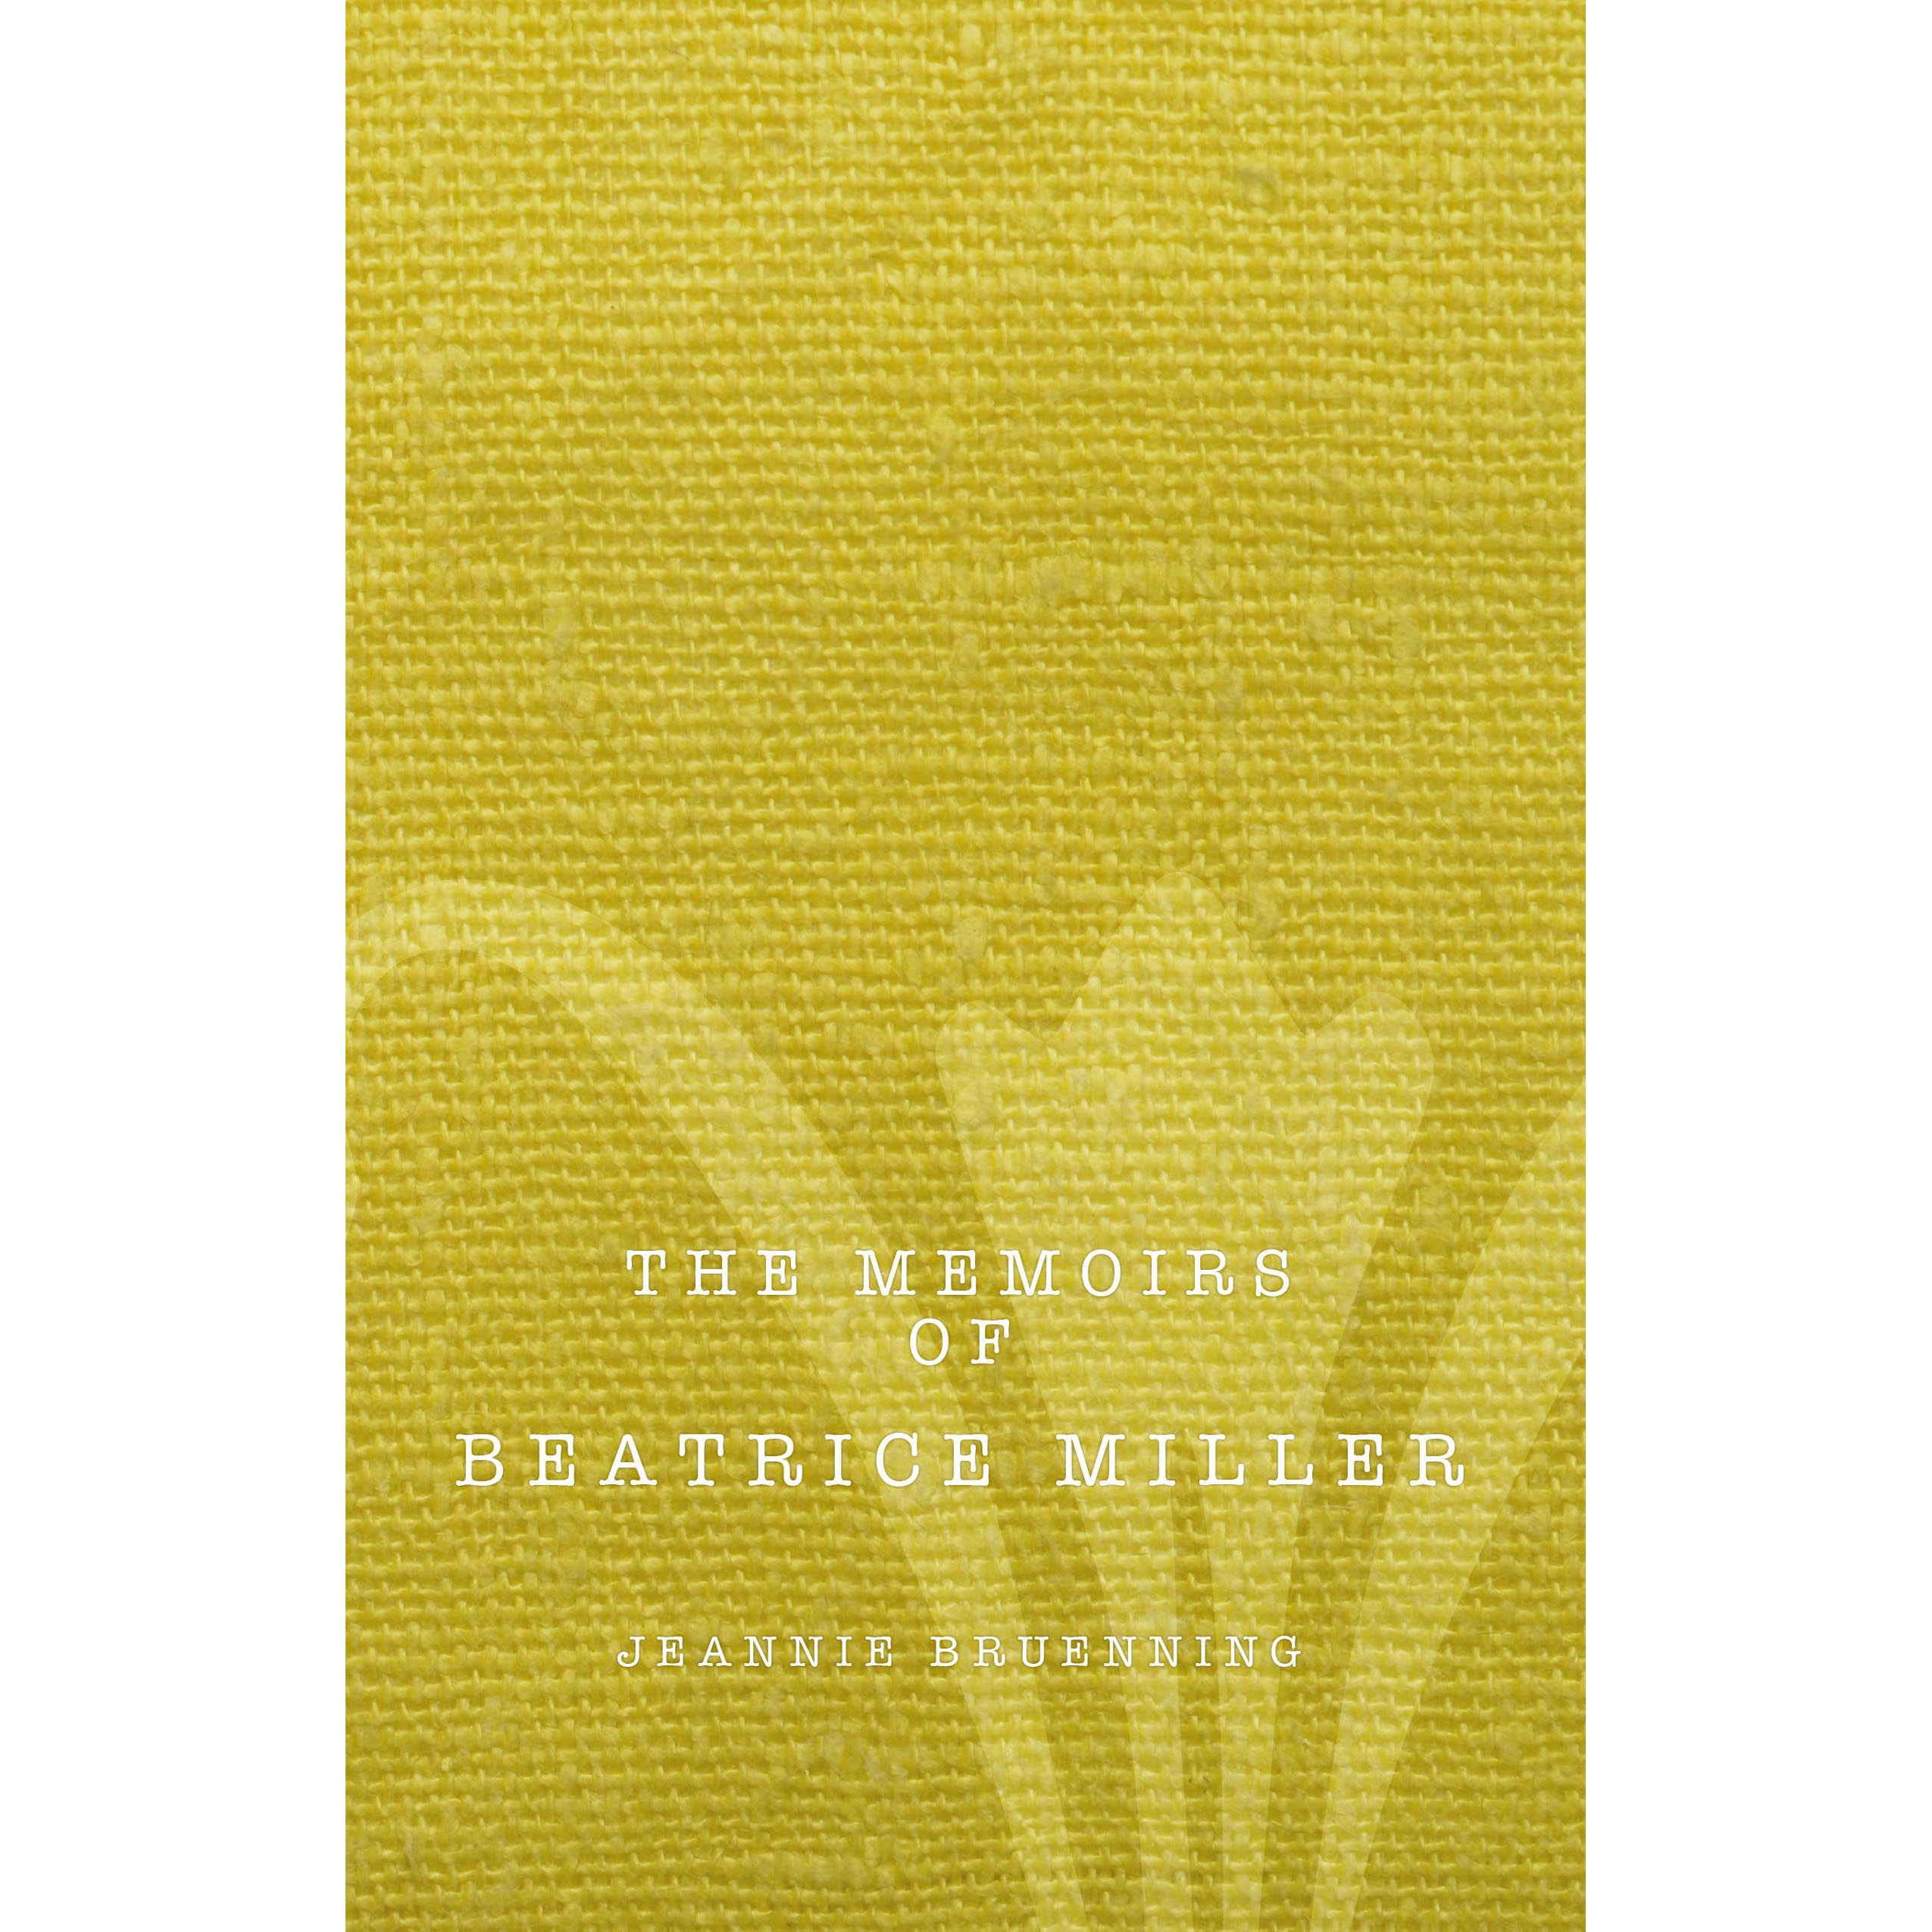 The Memoirs of Beatrice Miller, written by Jeannie Bruenning. Published by A Silver Thread Publishing. Paperbound. $14.95